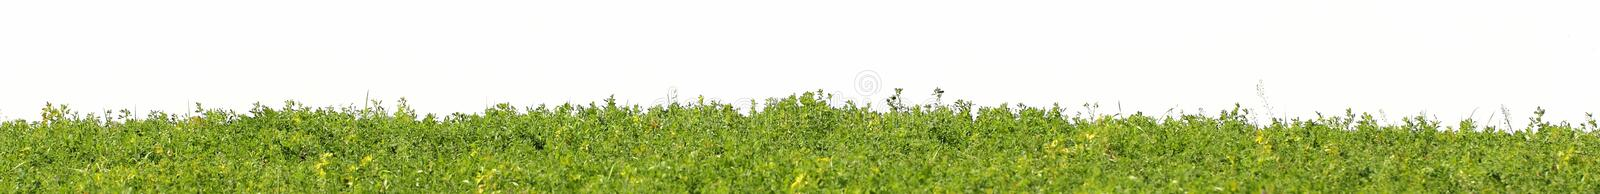 Green Grass in Field Isolated on a White. Banner. stock photos